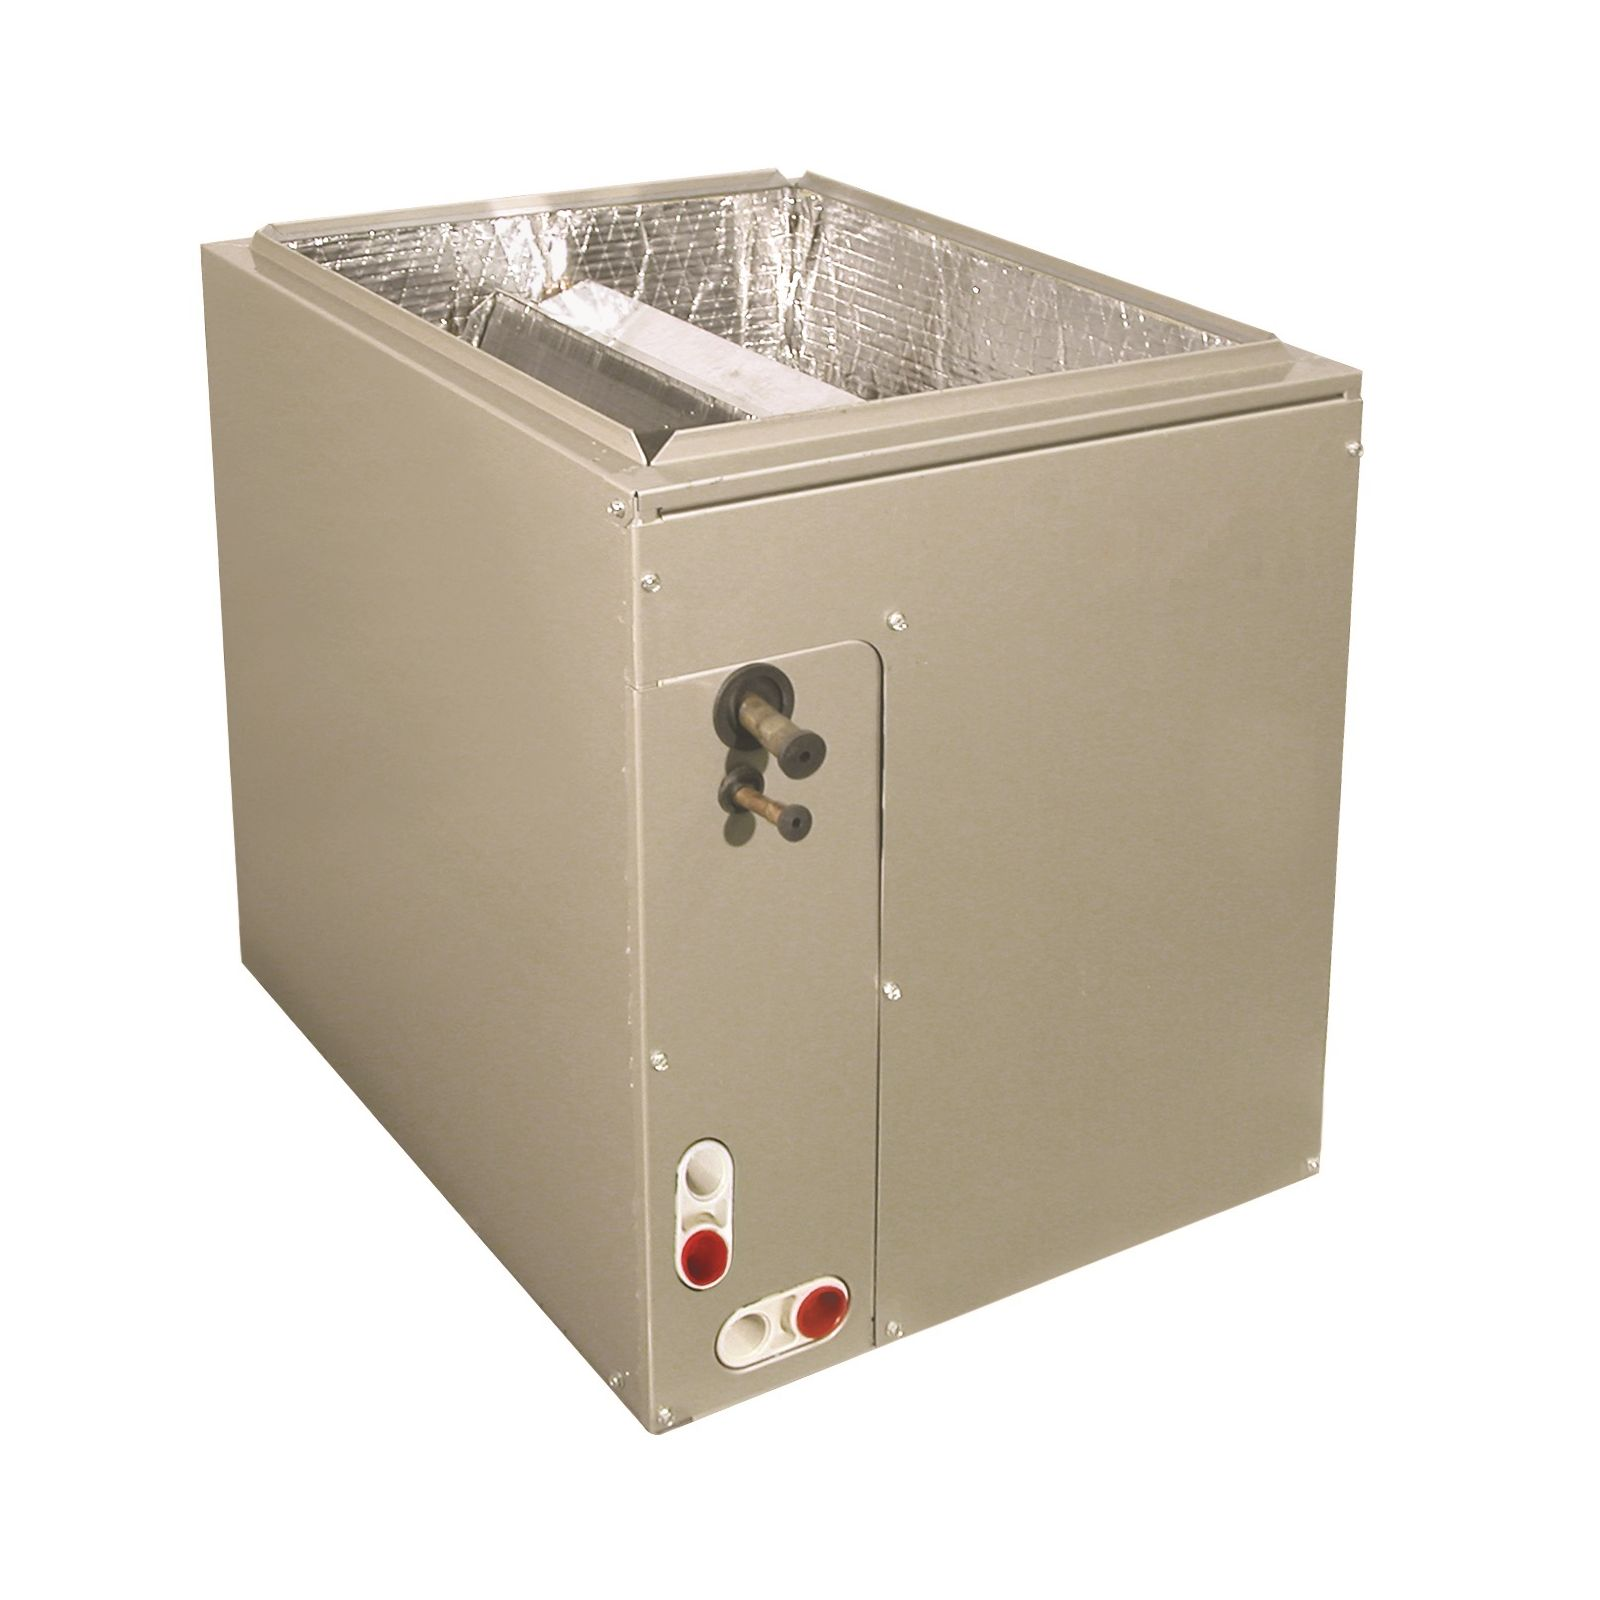 "Tempstar EAM4X48L24A - 4 Ton R410A Multi-position Cased Evaporator Coil 24.5"" Wide With TXV, Aluminum Tube and Fins"